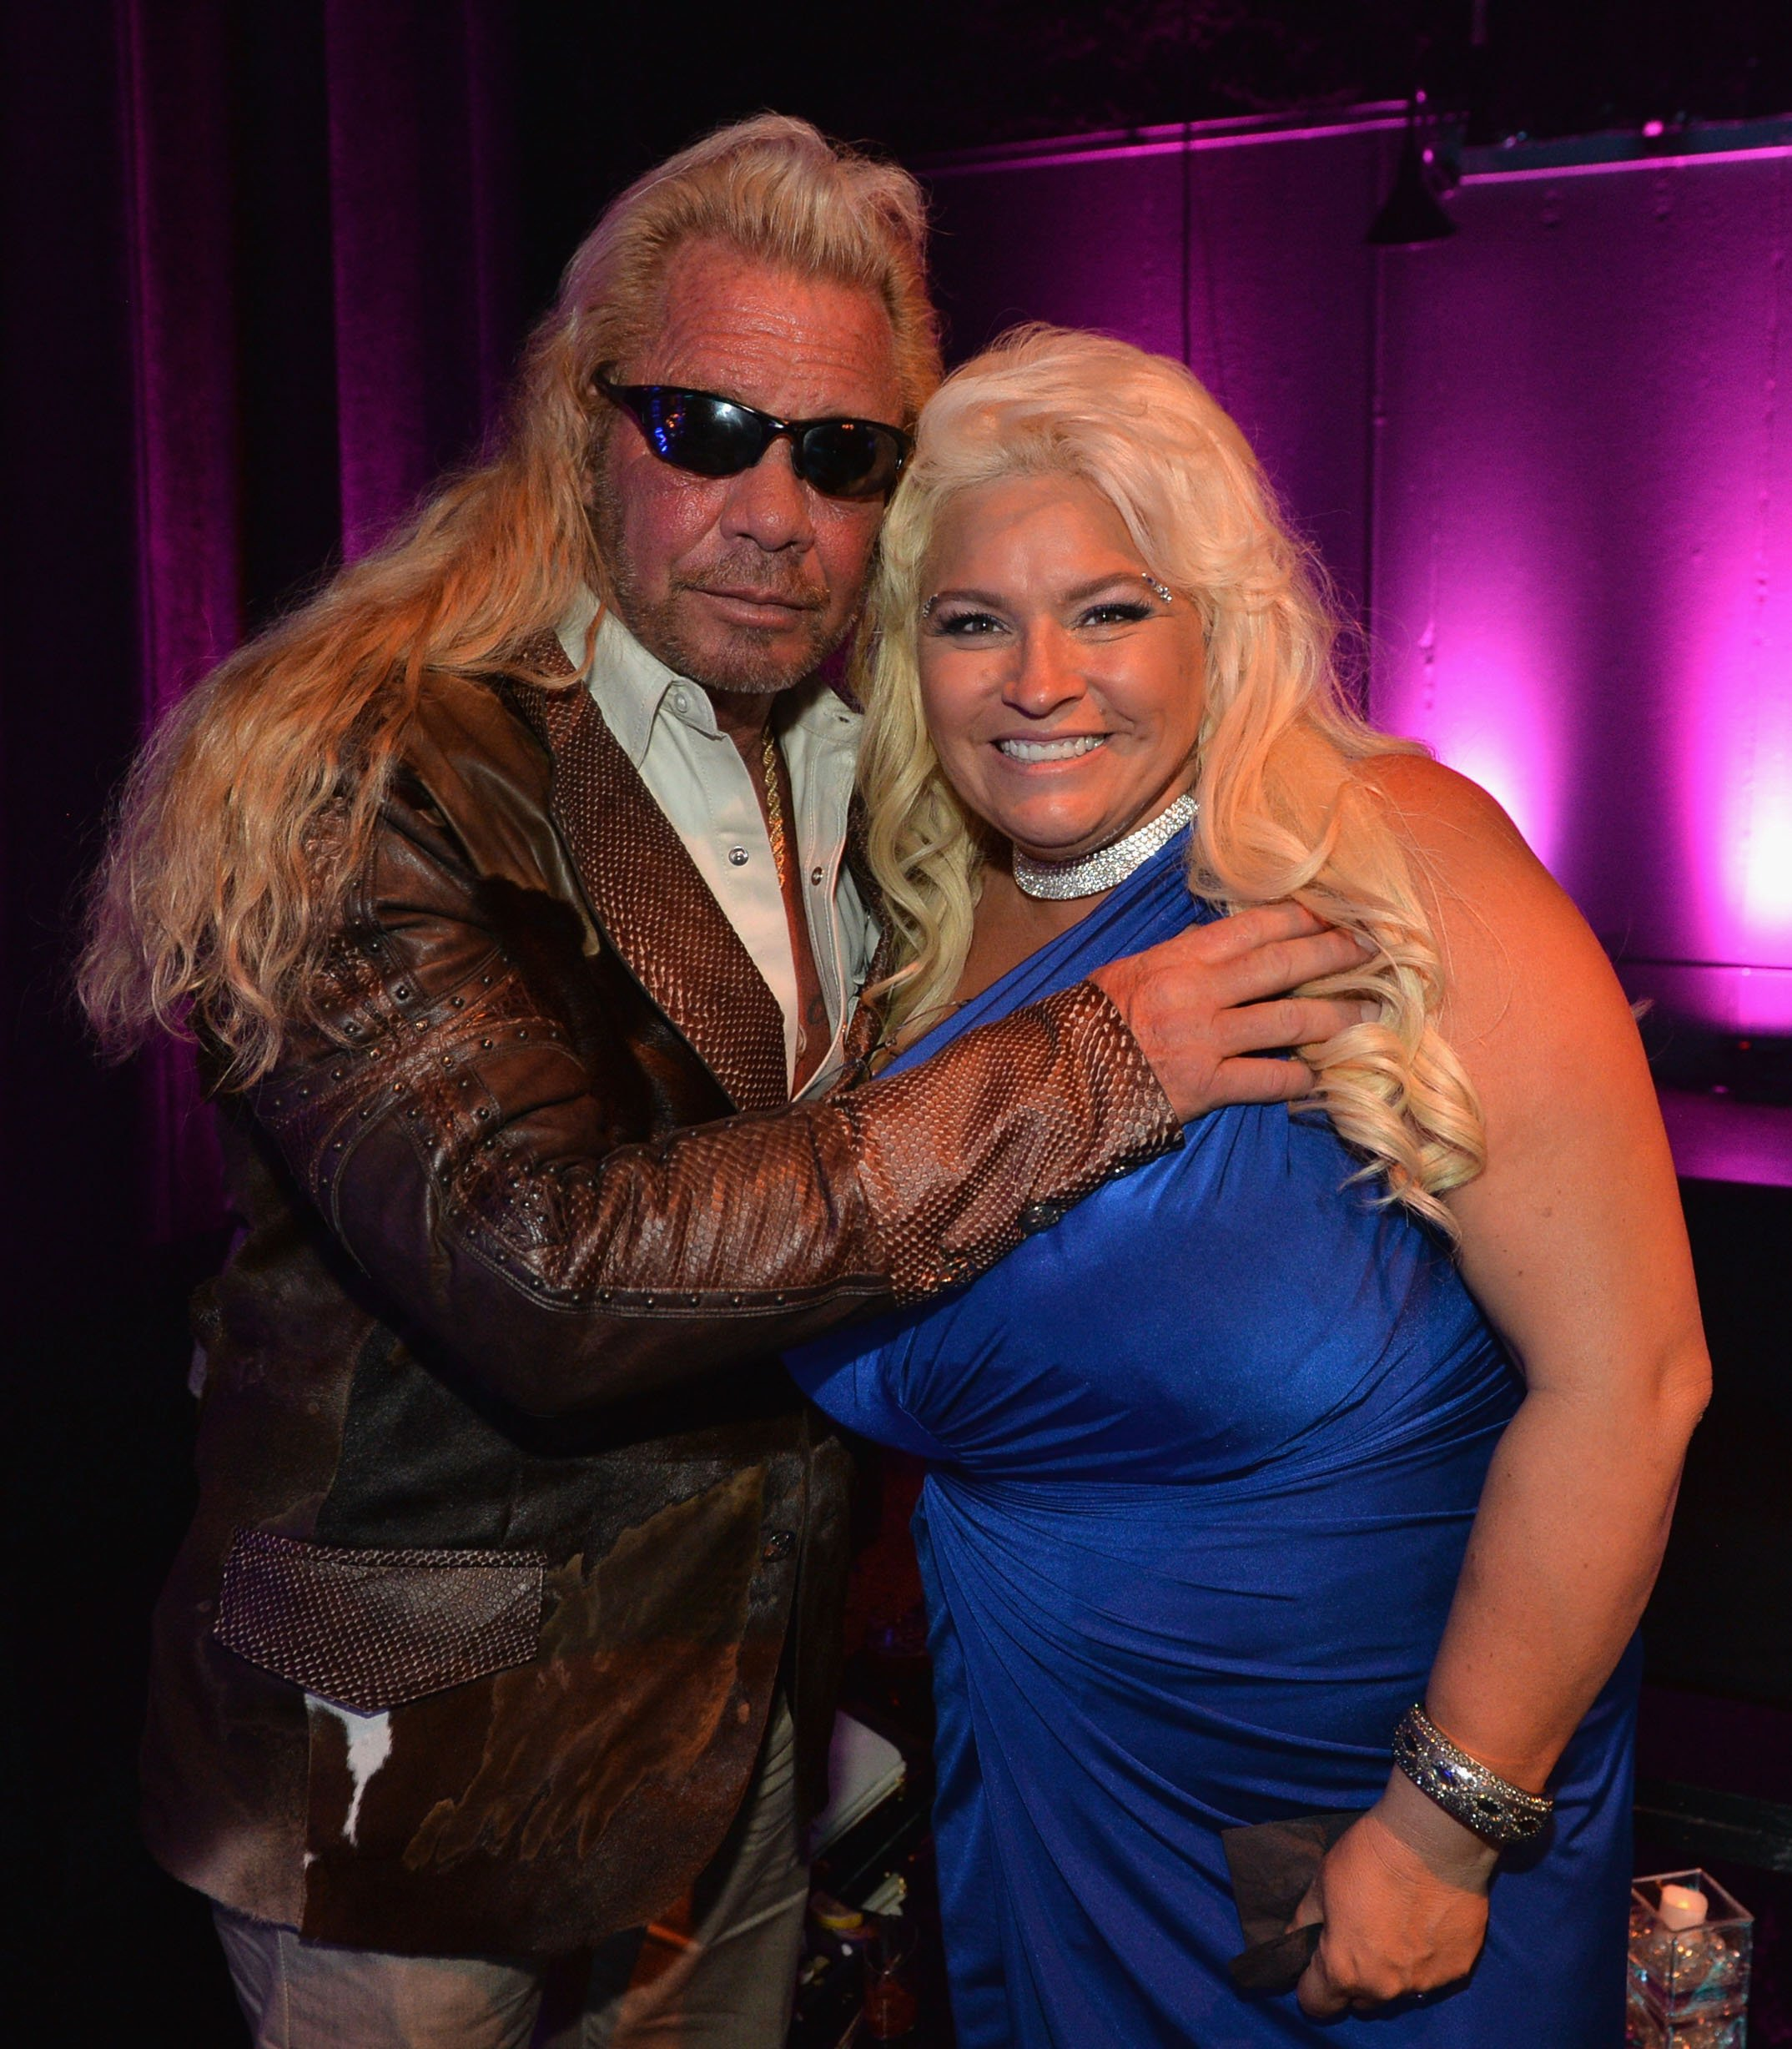 TV personalities Duane Dog Lee Chapman and Beth Chapman attend the 2013 CMT Music Awards - After Party at Rocketown on June 5, 2013 | Photo: Getty Images